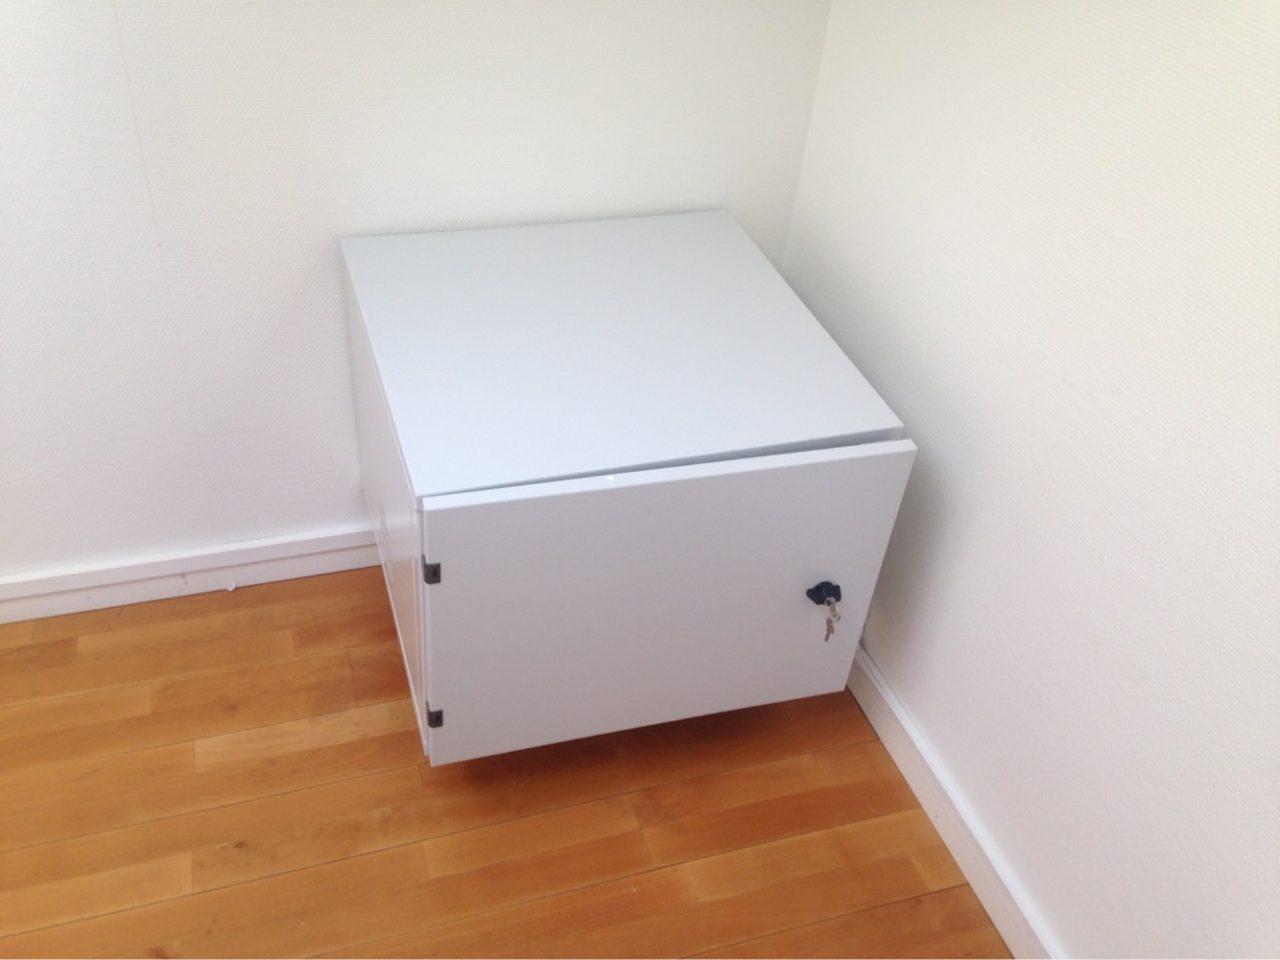 Server Box In A Corner With Keys